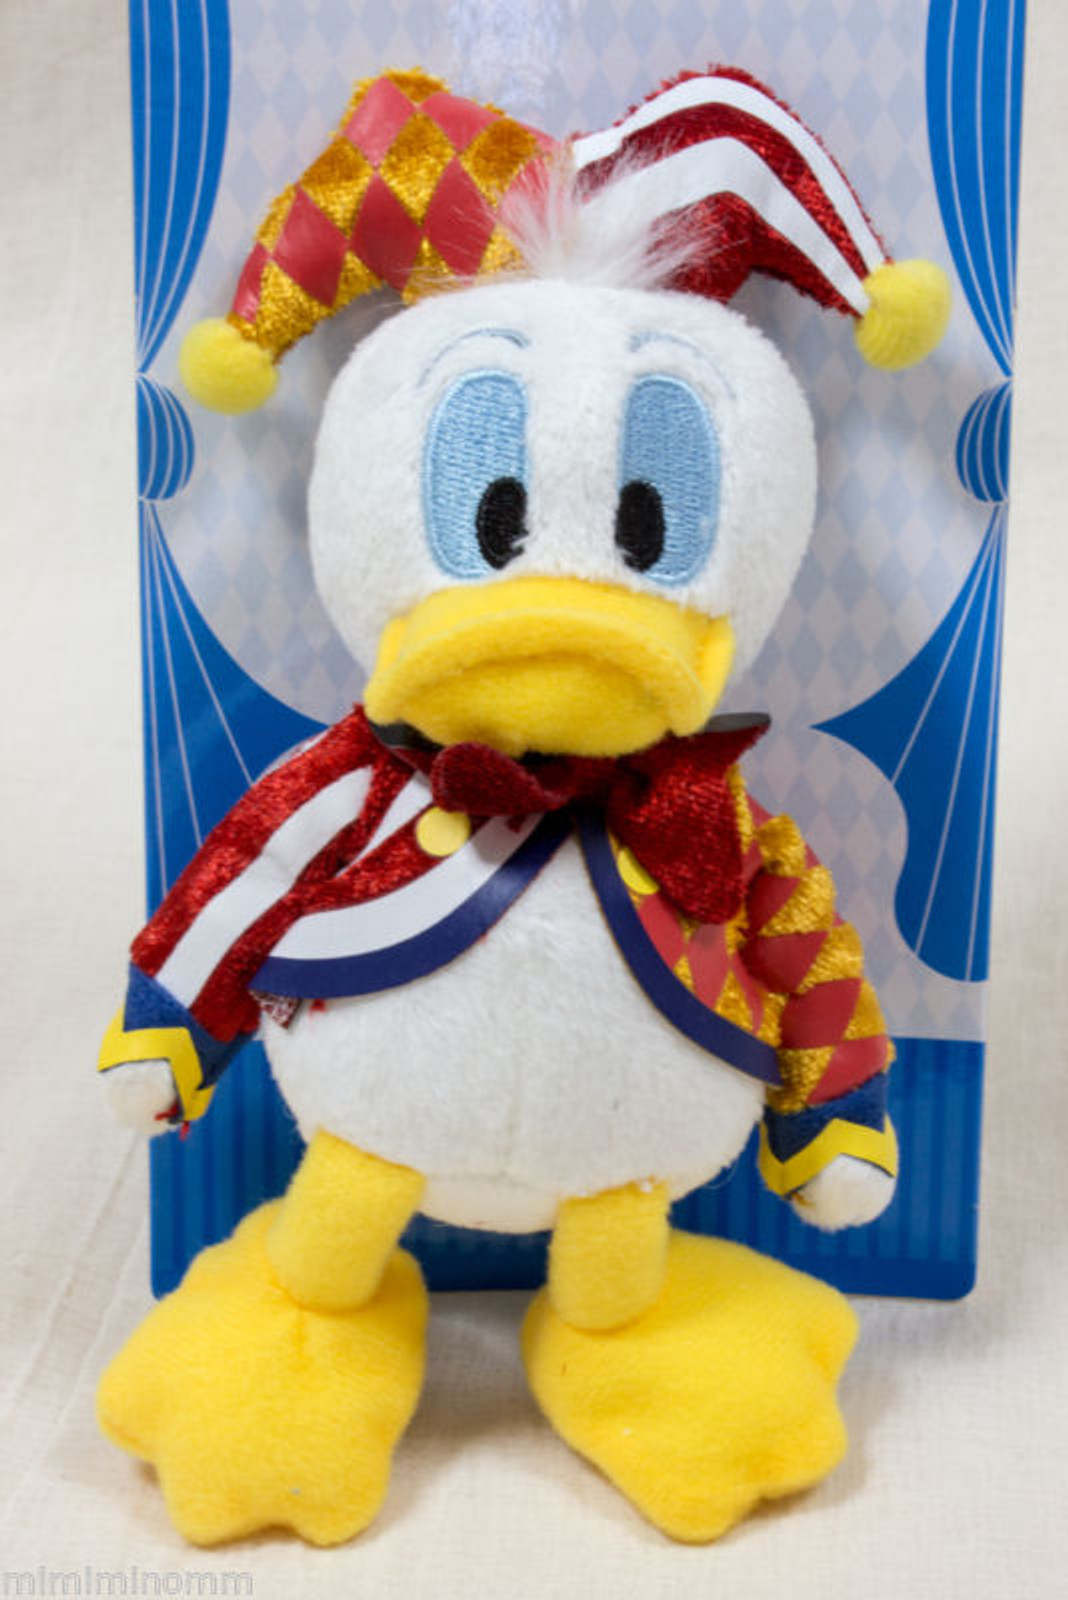 "Disney Donald Duck 6"" Plush doll Keycain Mascot Figure Halloween Circus JAPAN"